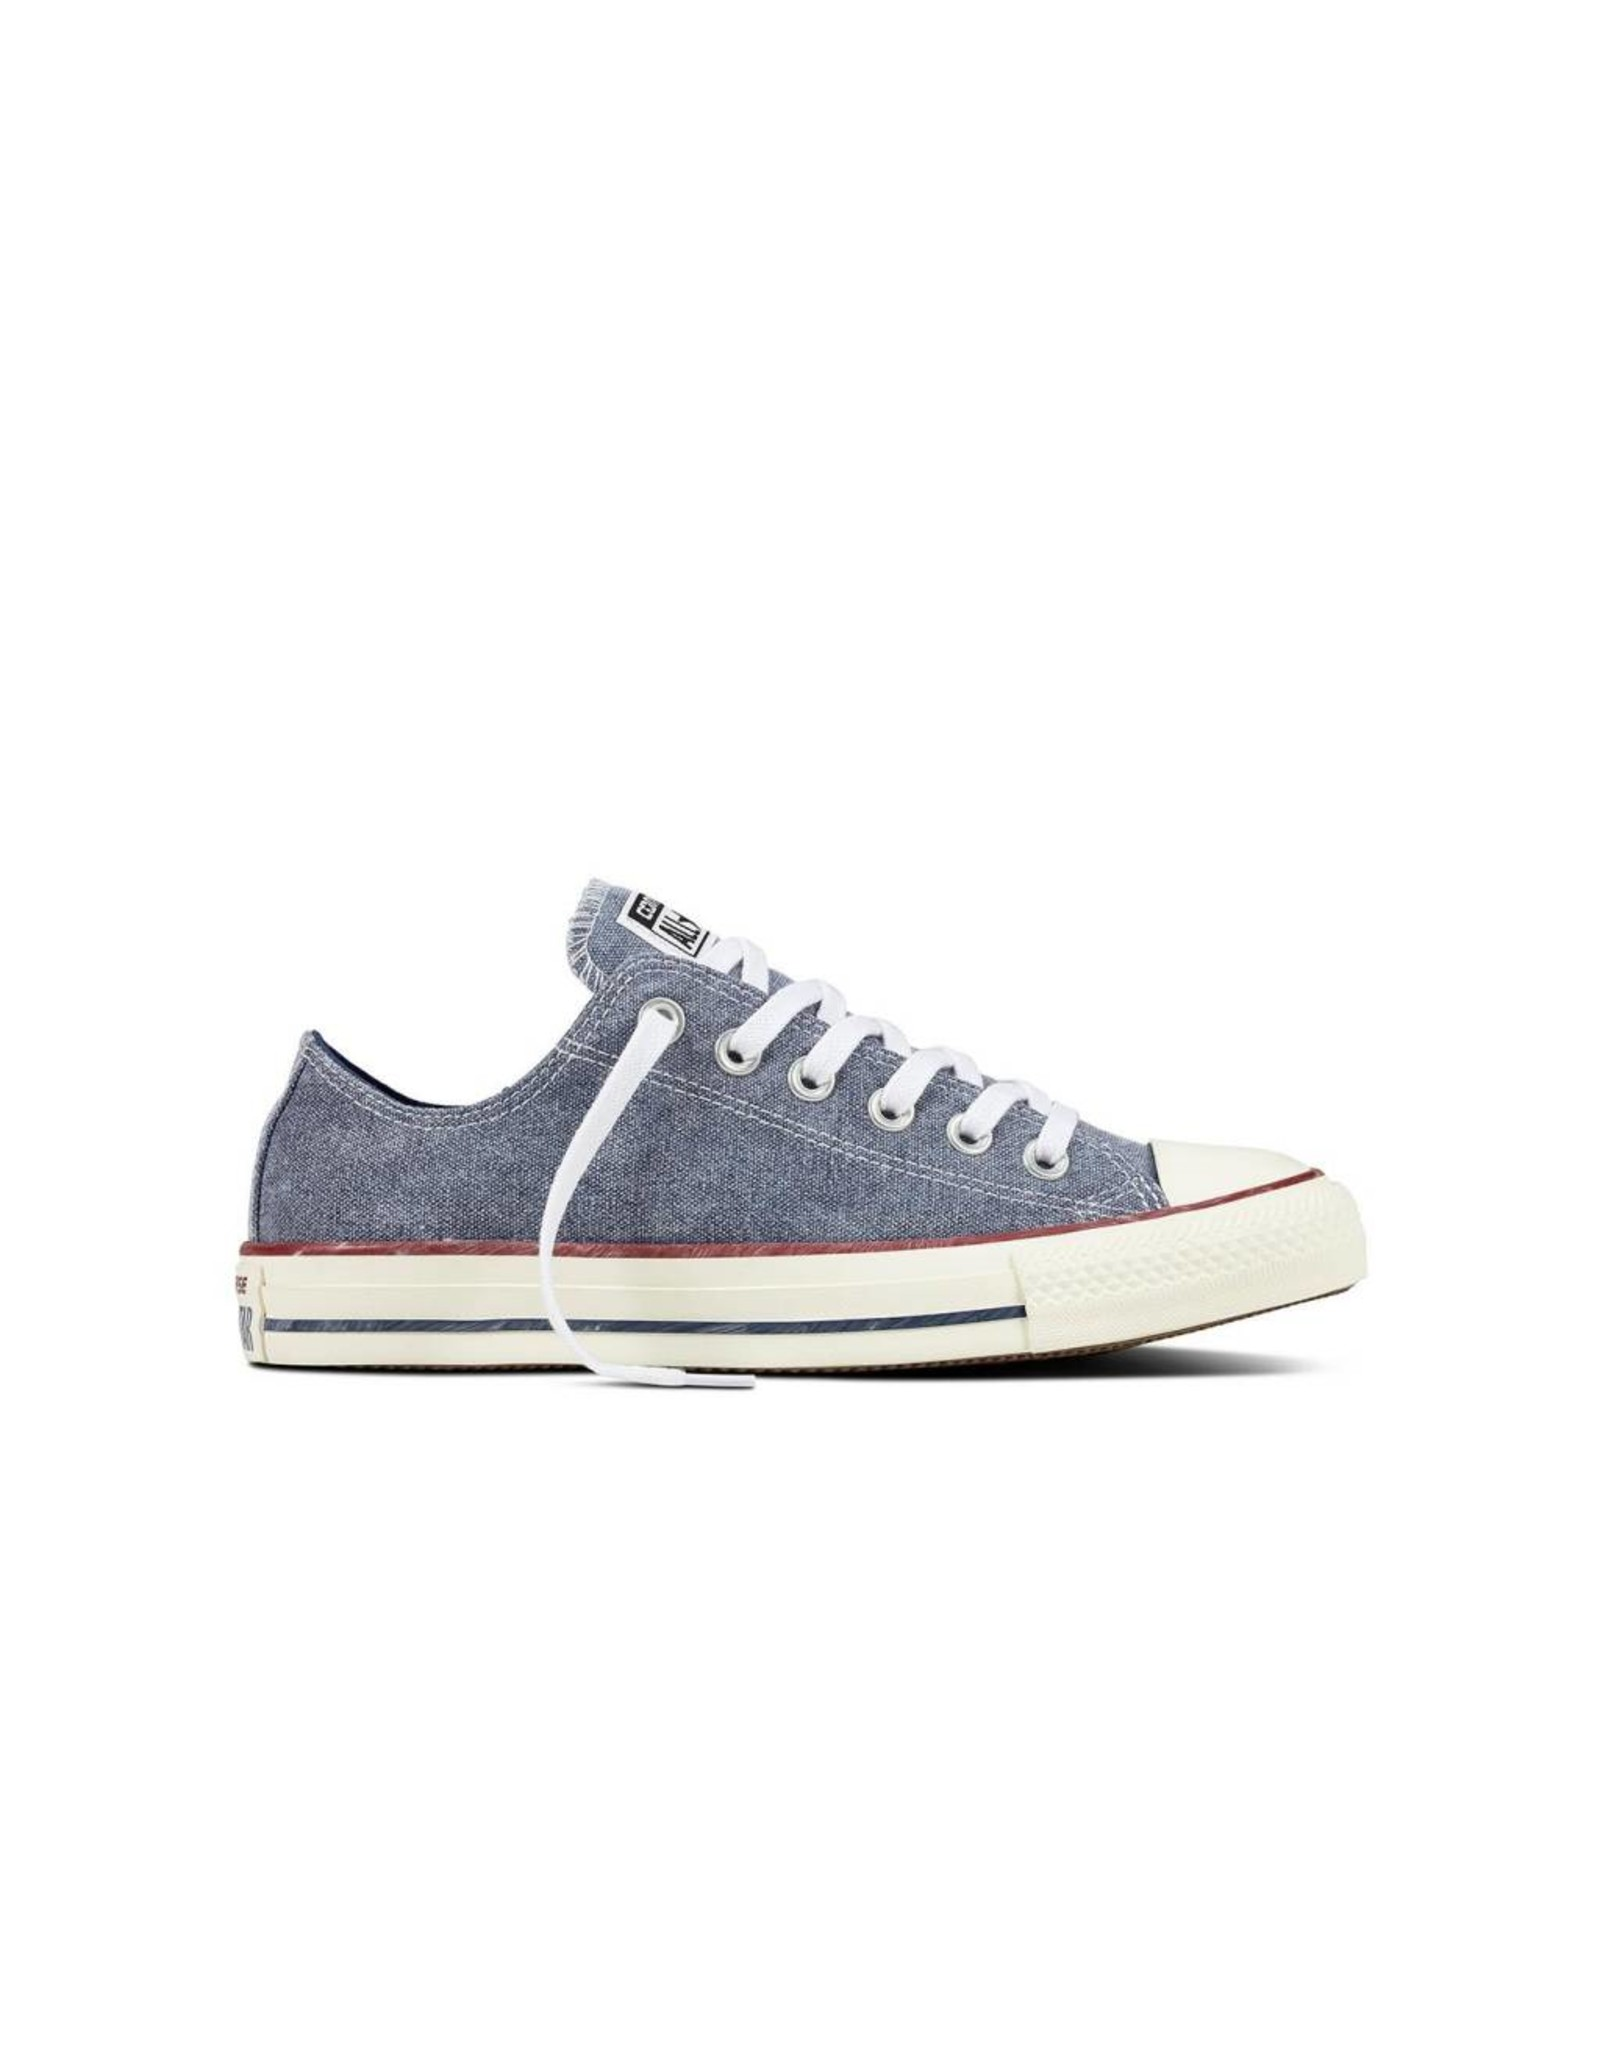 CONVERSE CHUCK TAYLOR OX NAVY/NAVY/WHITE C12VN-159539C